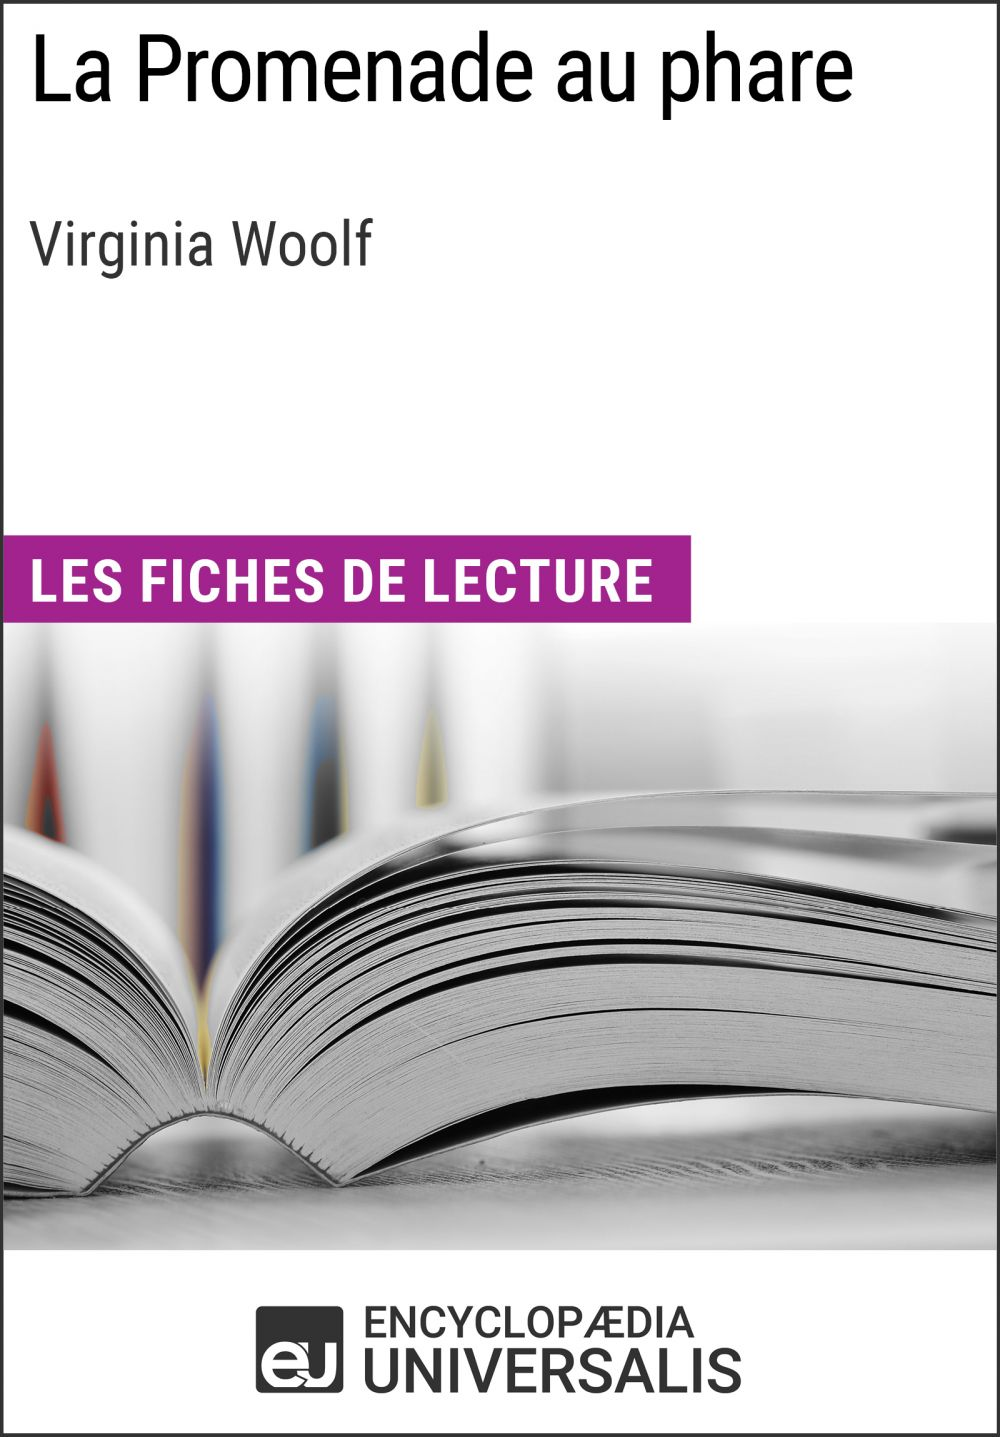 La Promenade au phare de Virginia Woolf